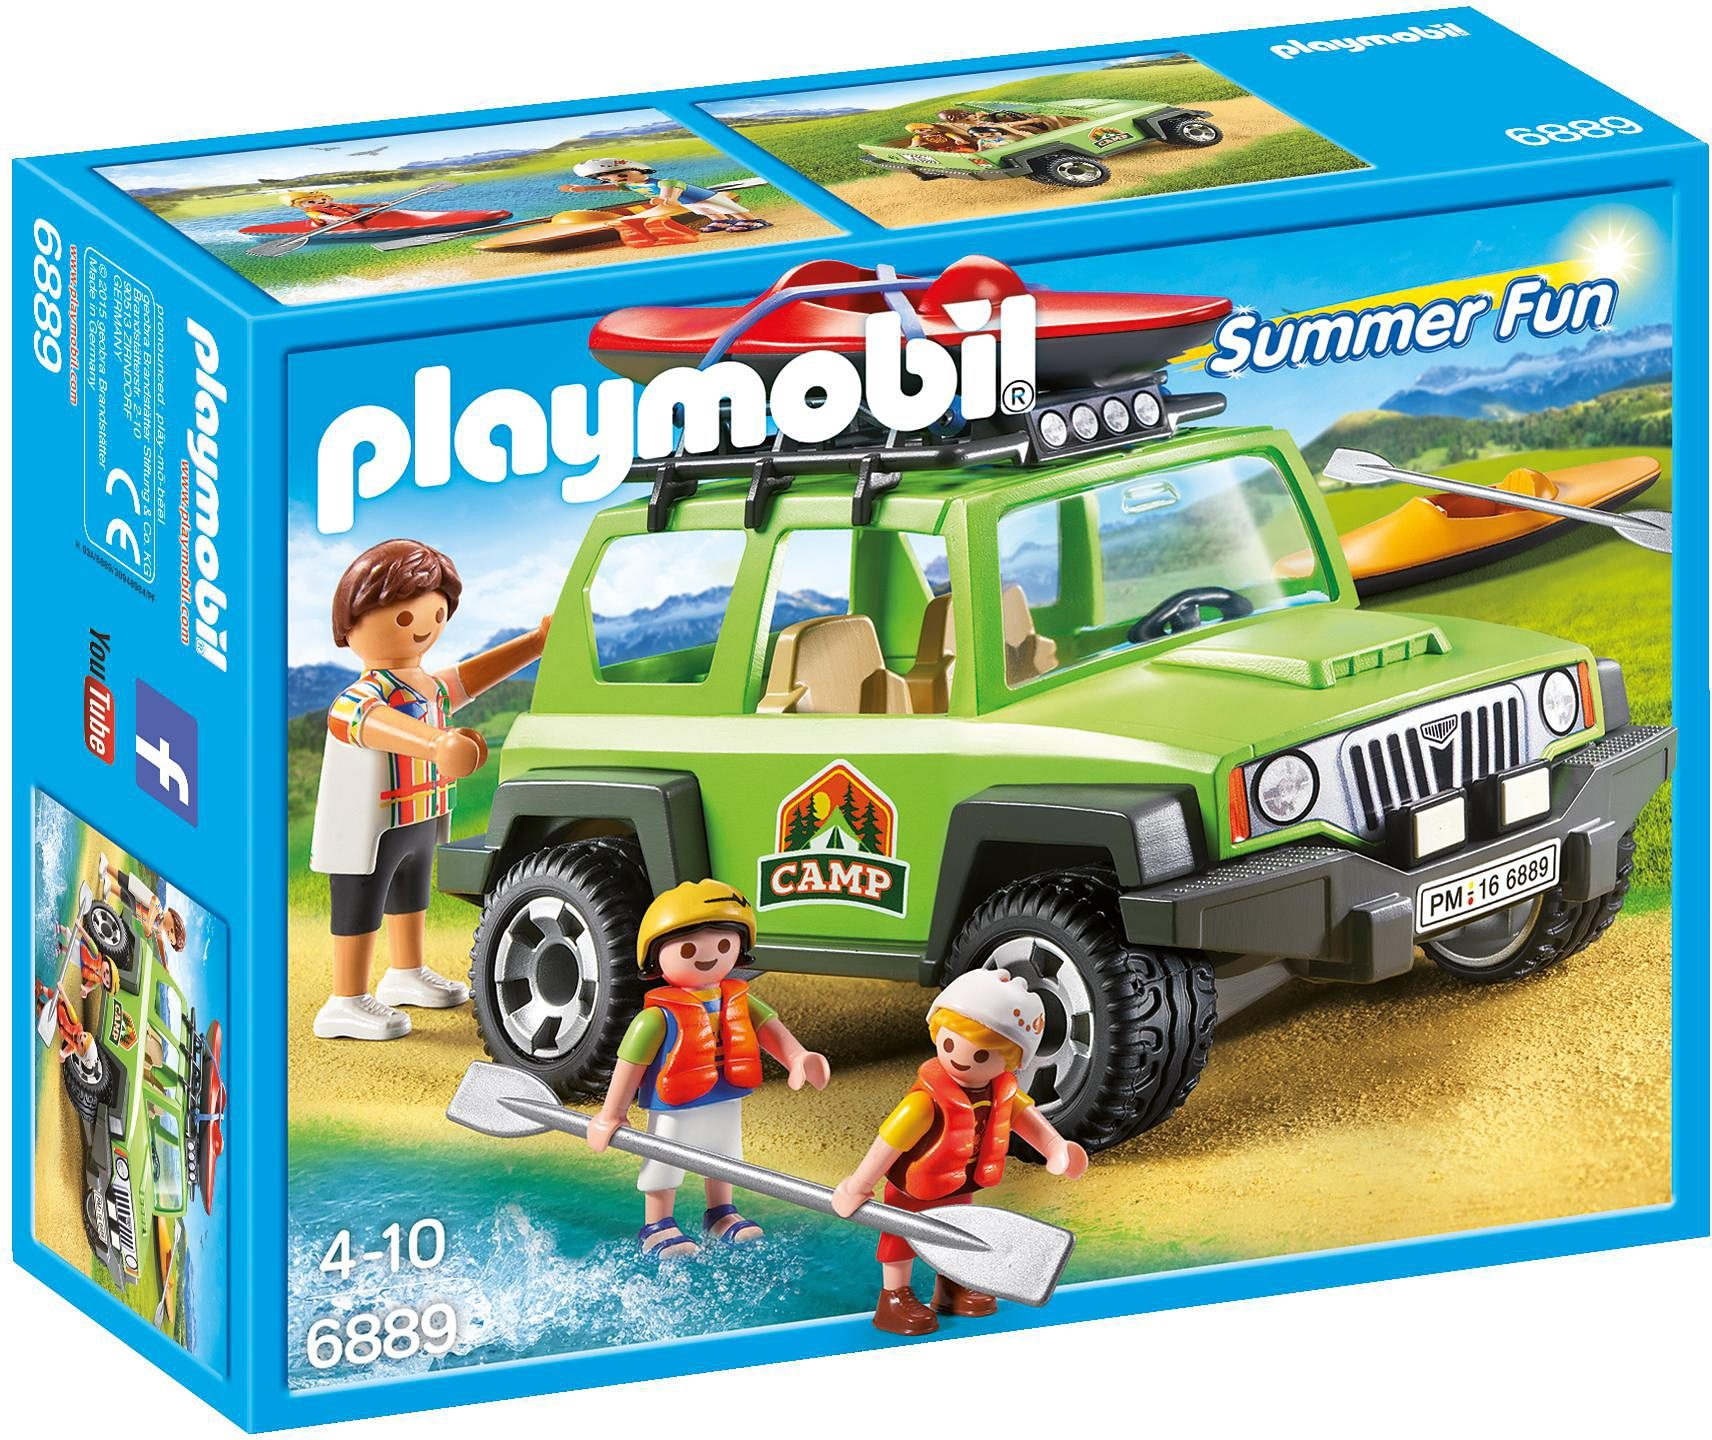 Playmobil® Camp-Geländewagen (6889), »Summer Fun«